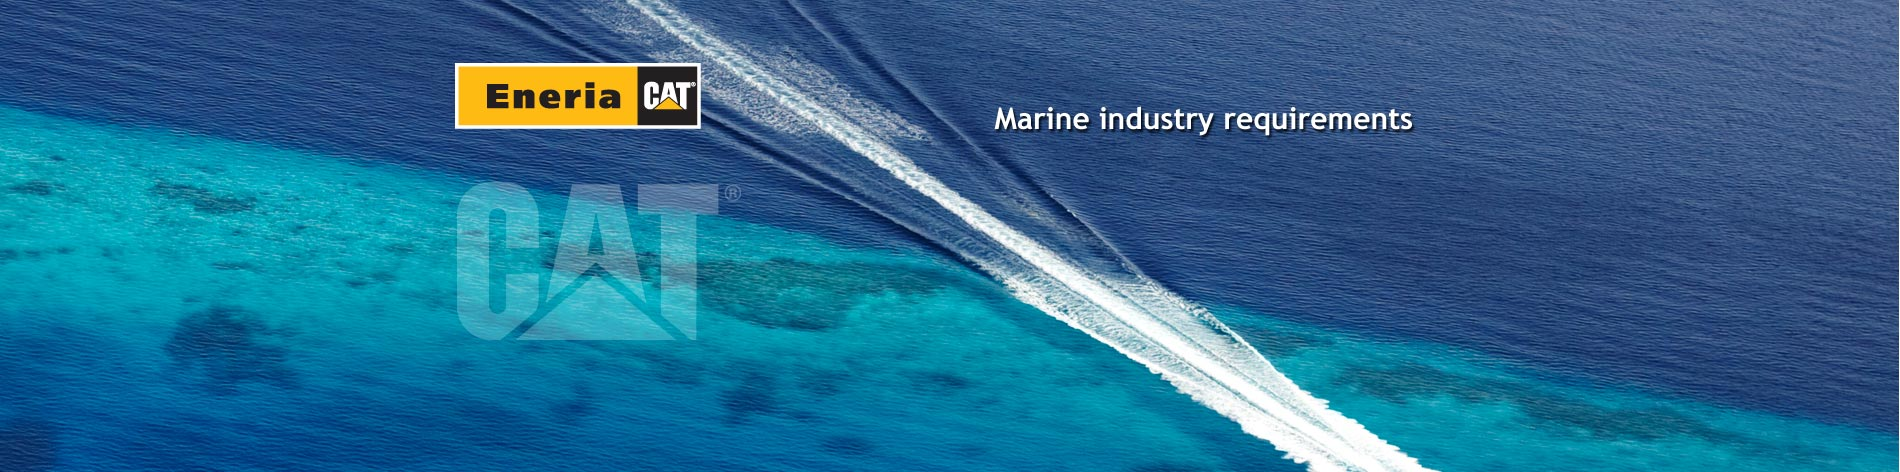 The global shipping industry must comply with programmes intended to reduce emissions from all diesel-propelled ships.